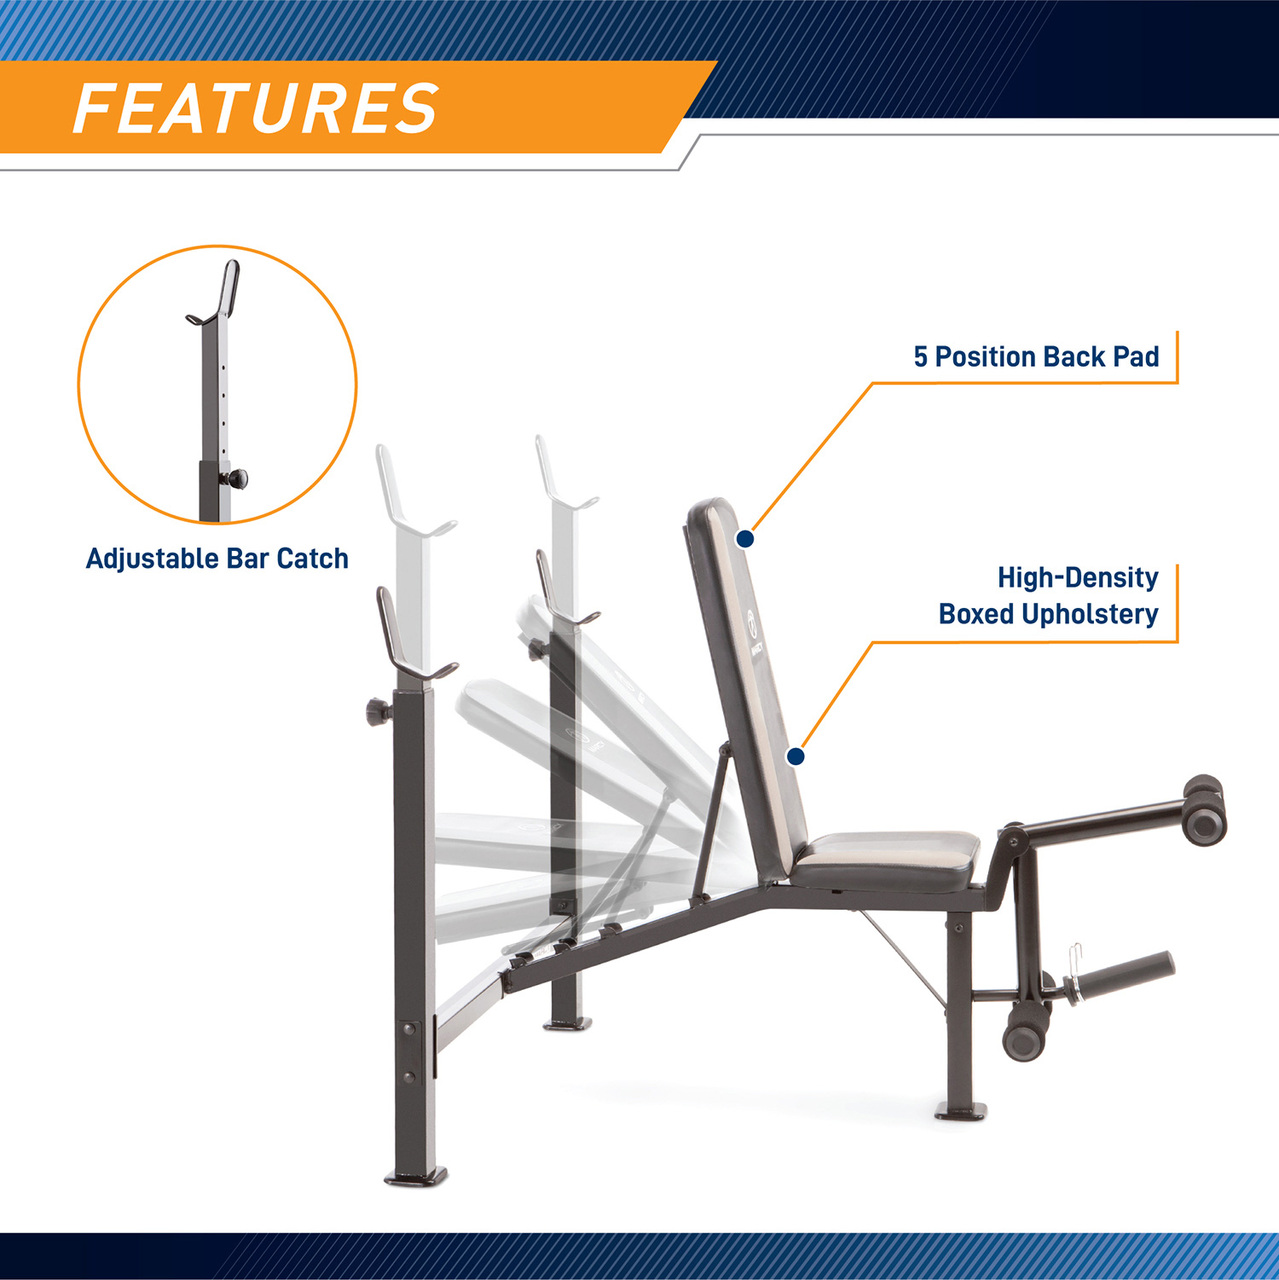 This equipment is designed with an adjustable seat and pack pad so that you can arrange the gear to tailor your training. Lay it in an incline position, decline position, or flat position